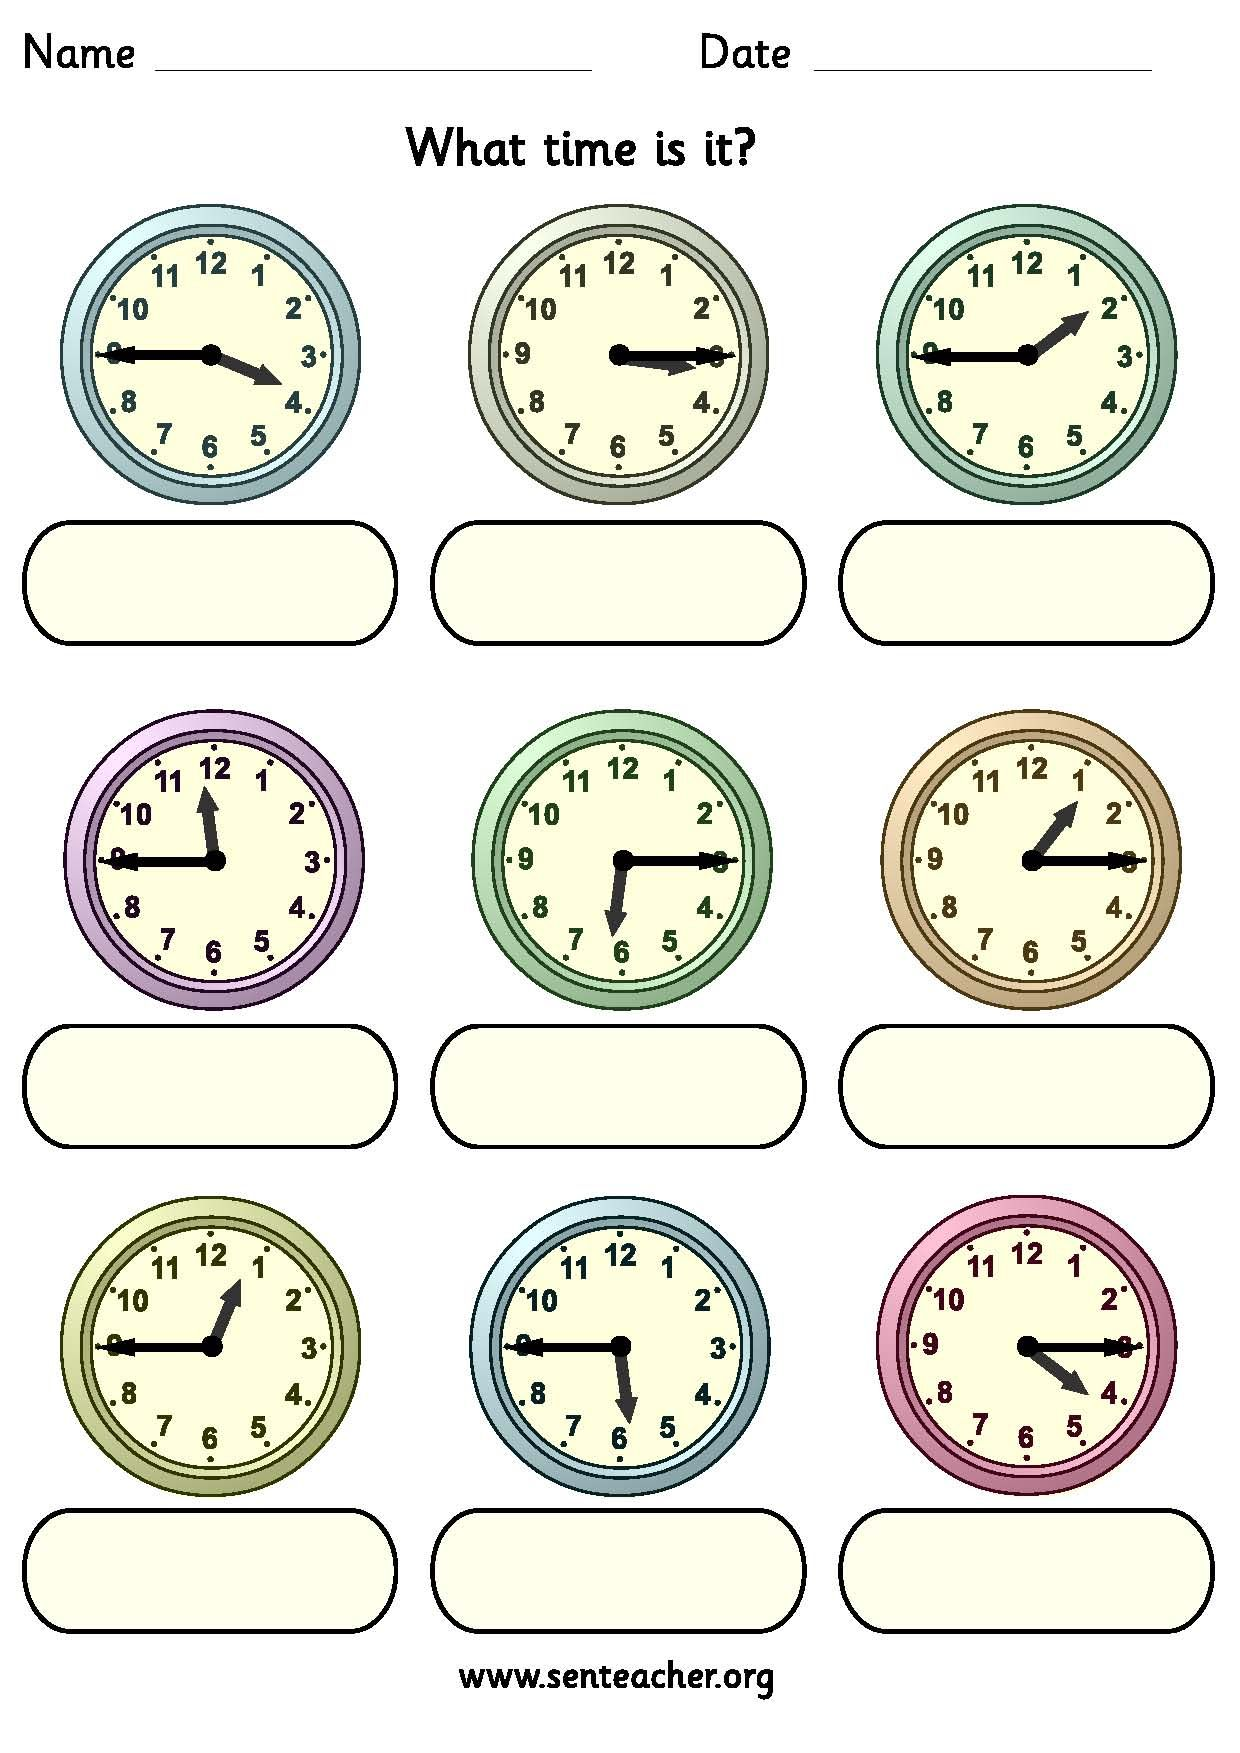 Worksheet Containing 9ogue Clocks Showing Quarter To And Quarter Past Times With Space To